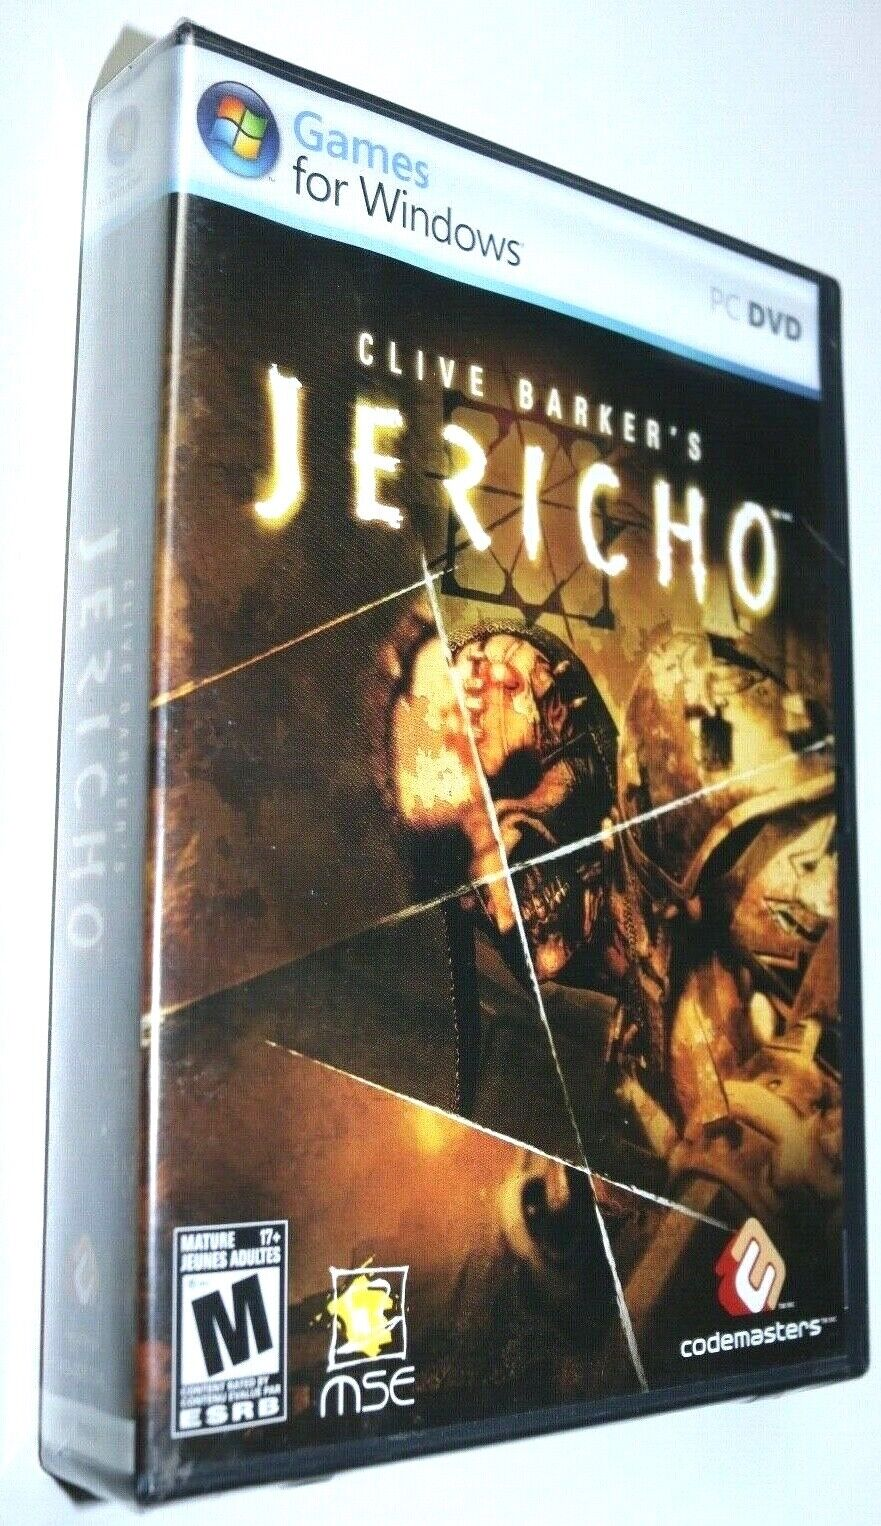 Computer Games - Clive Barker's Jericho PC Computer Game DVD-Rom NEW Sealed